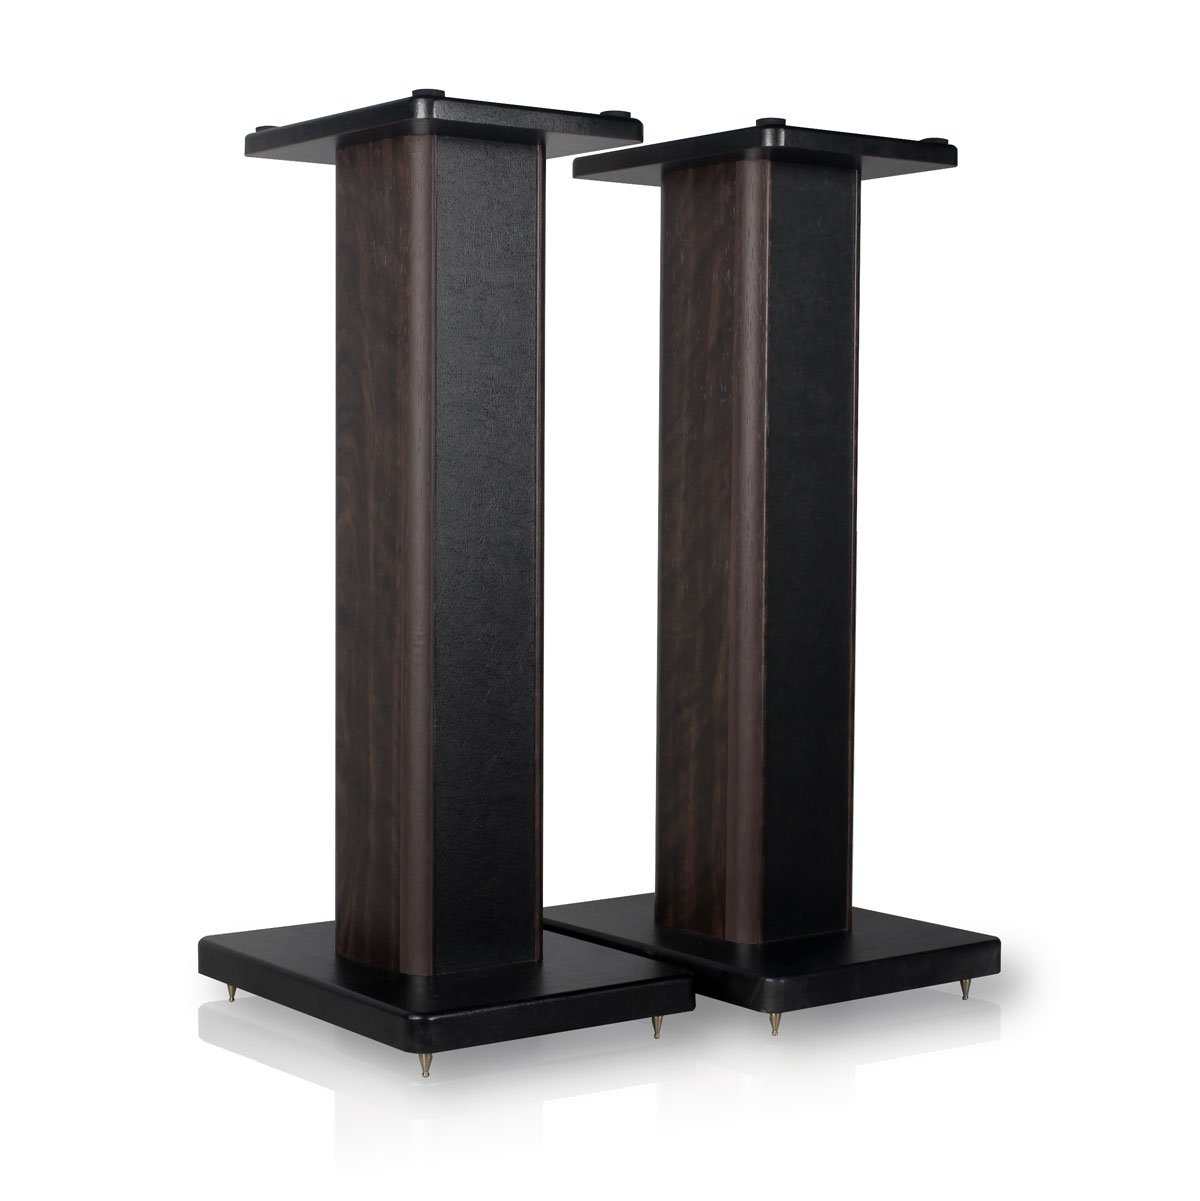 minify BS-S8 – 1 pair of MDF box speaker stands – ideal for boxes with wood décor BS-S8-60N